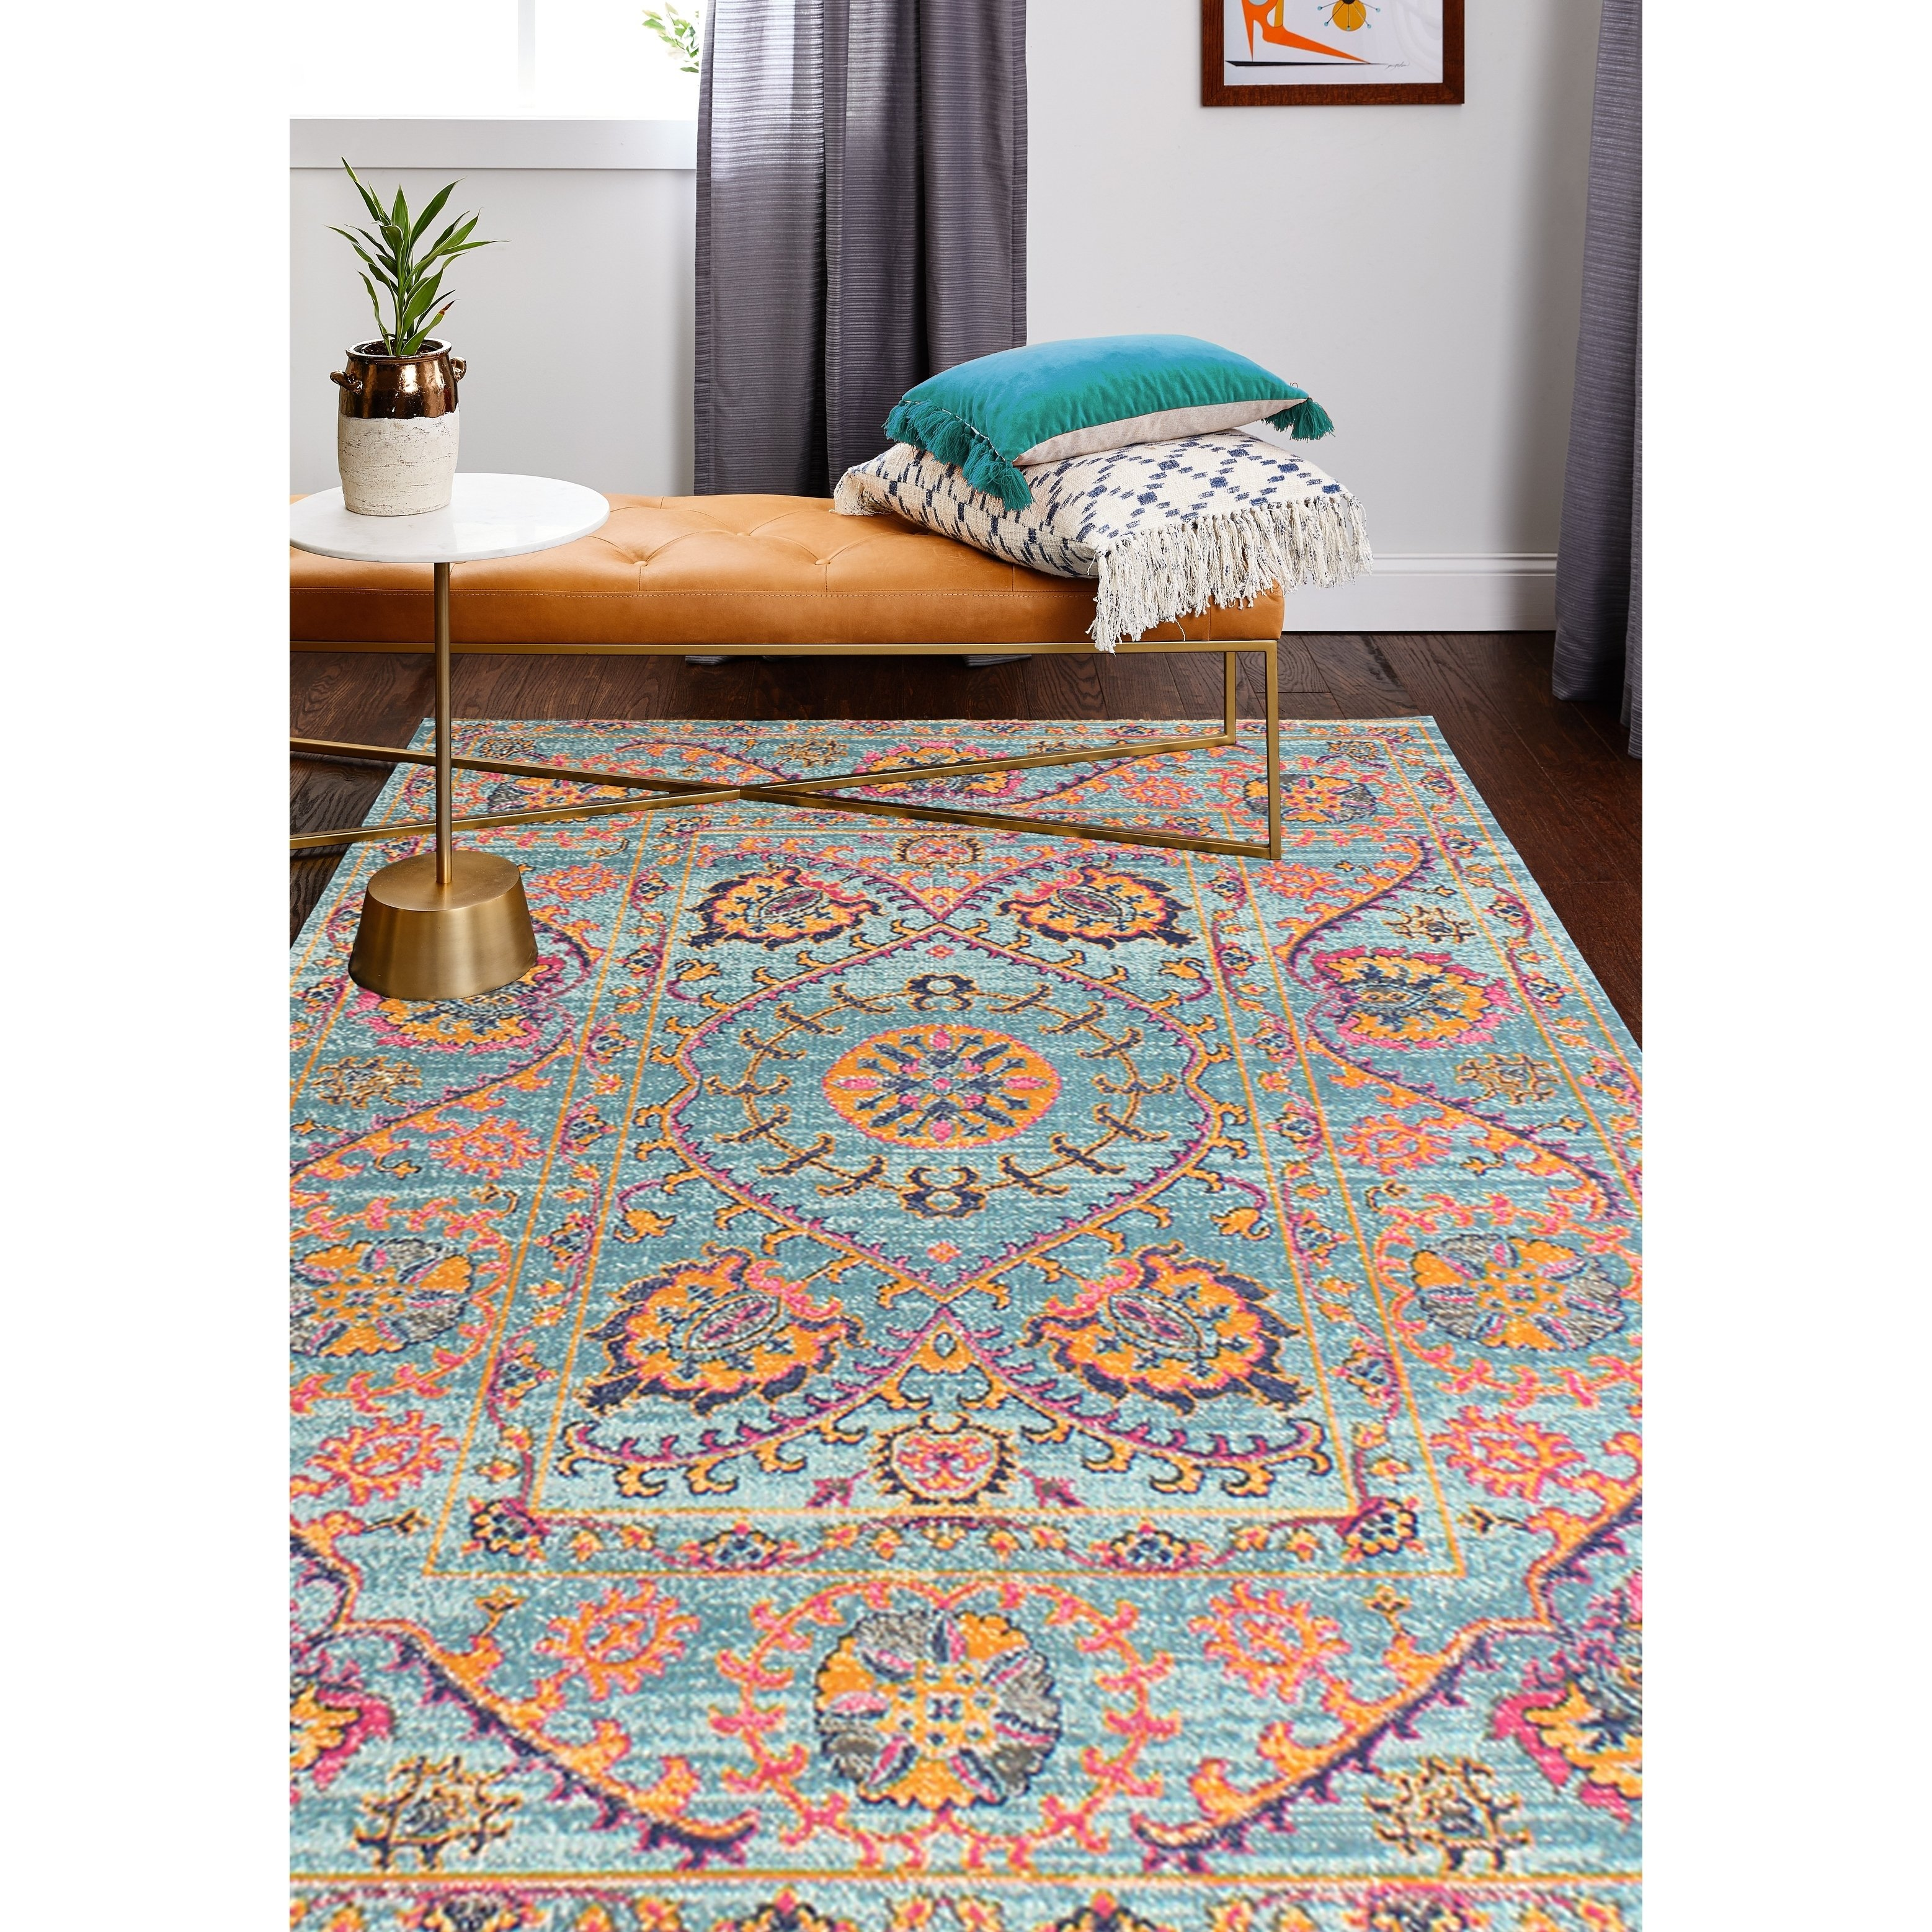 Brewster Teal Transitional Area Rug 8 7 X 11 6 8 7 X 11 6 Teal Blue Transitional Area Rugs Area Rugs Rugs